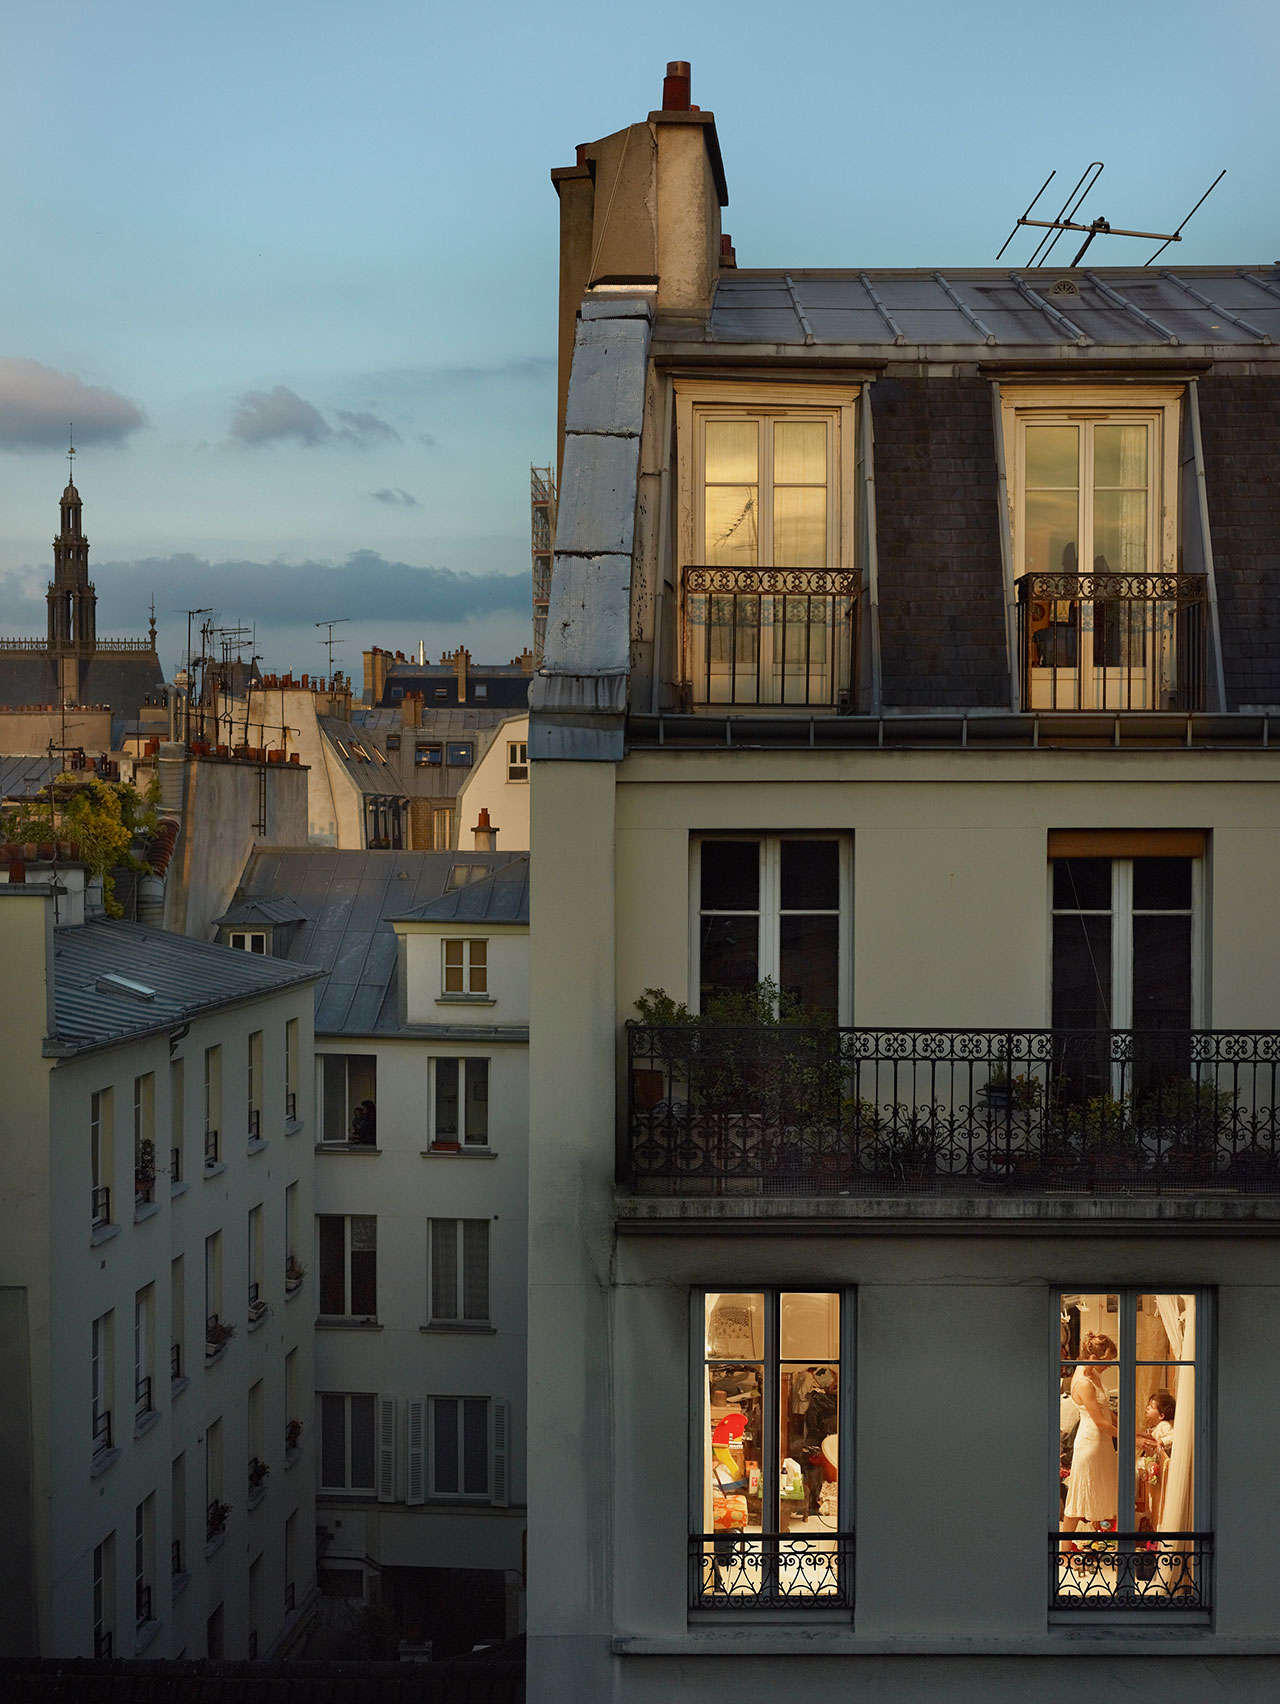 out_my_window_gail_albert_halaban_vis_a_vis_paris-1